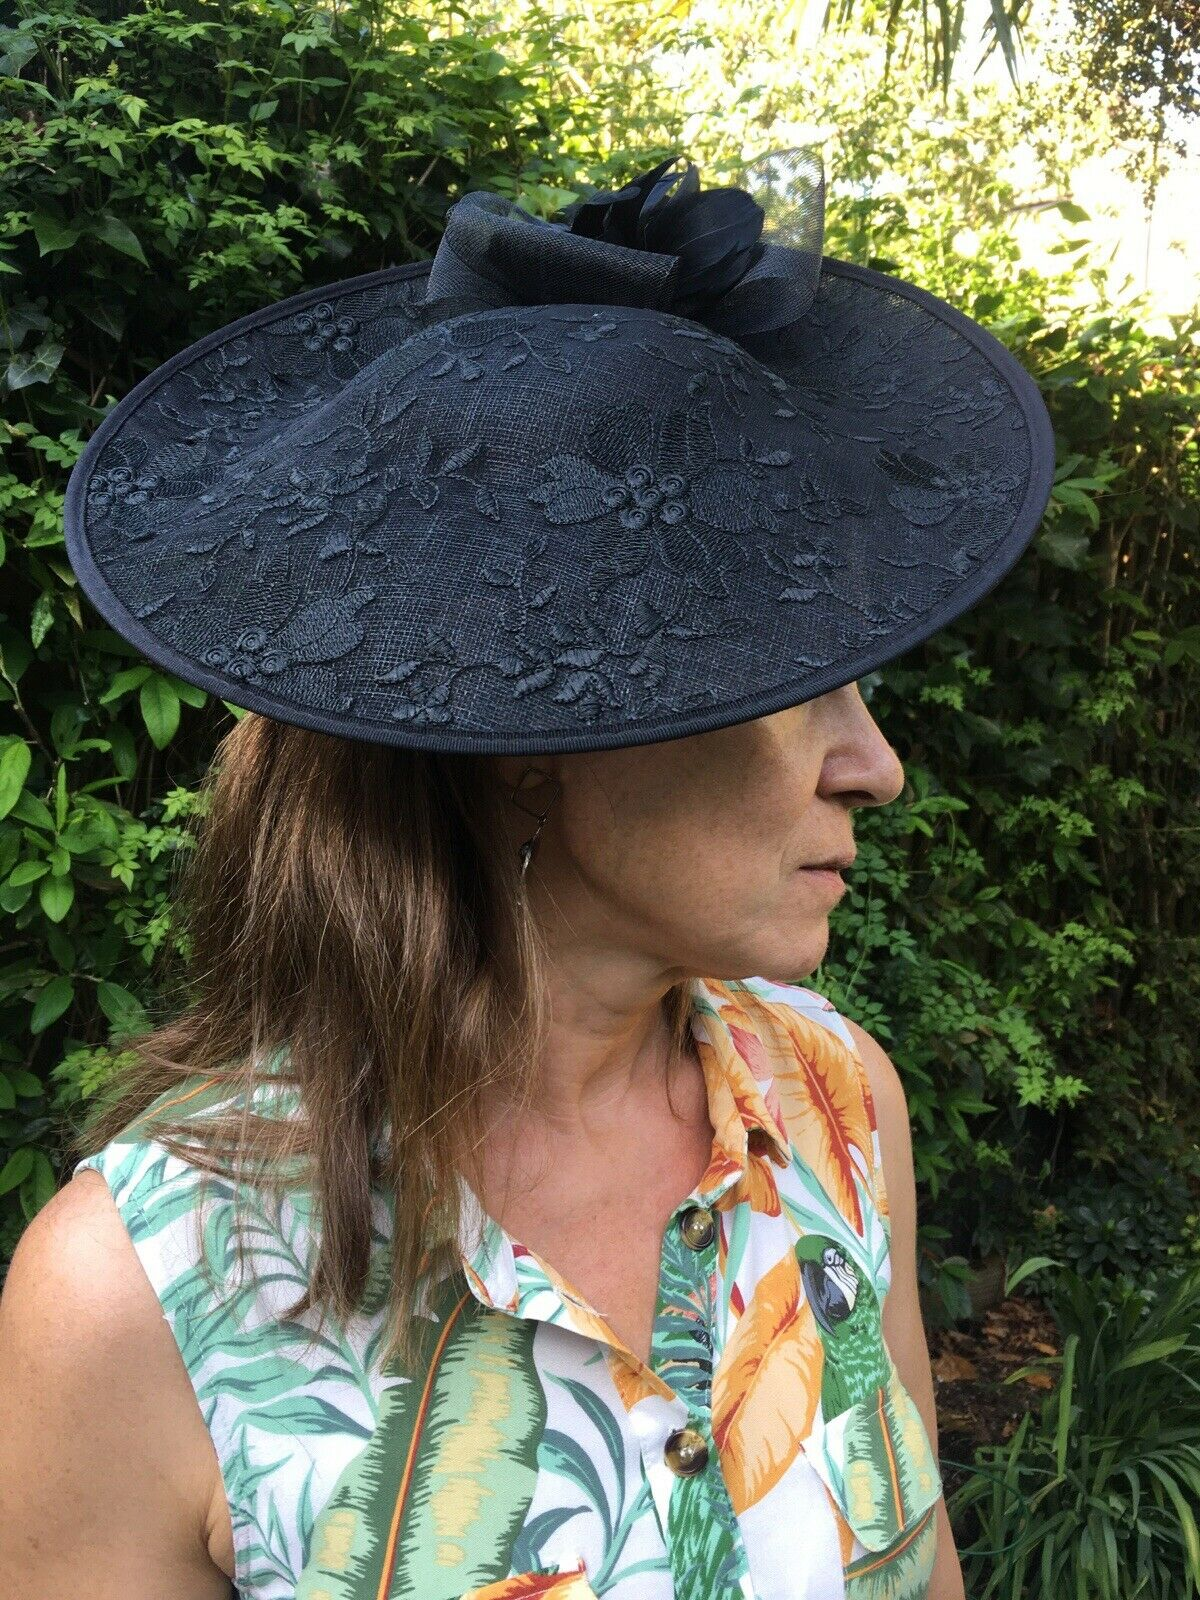 *New* John Lewis Hat Ideal For Weddings/Races/Special Occasions (with tags)